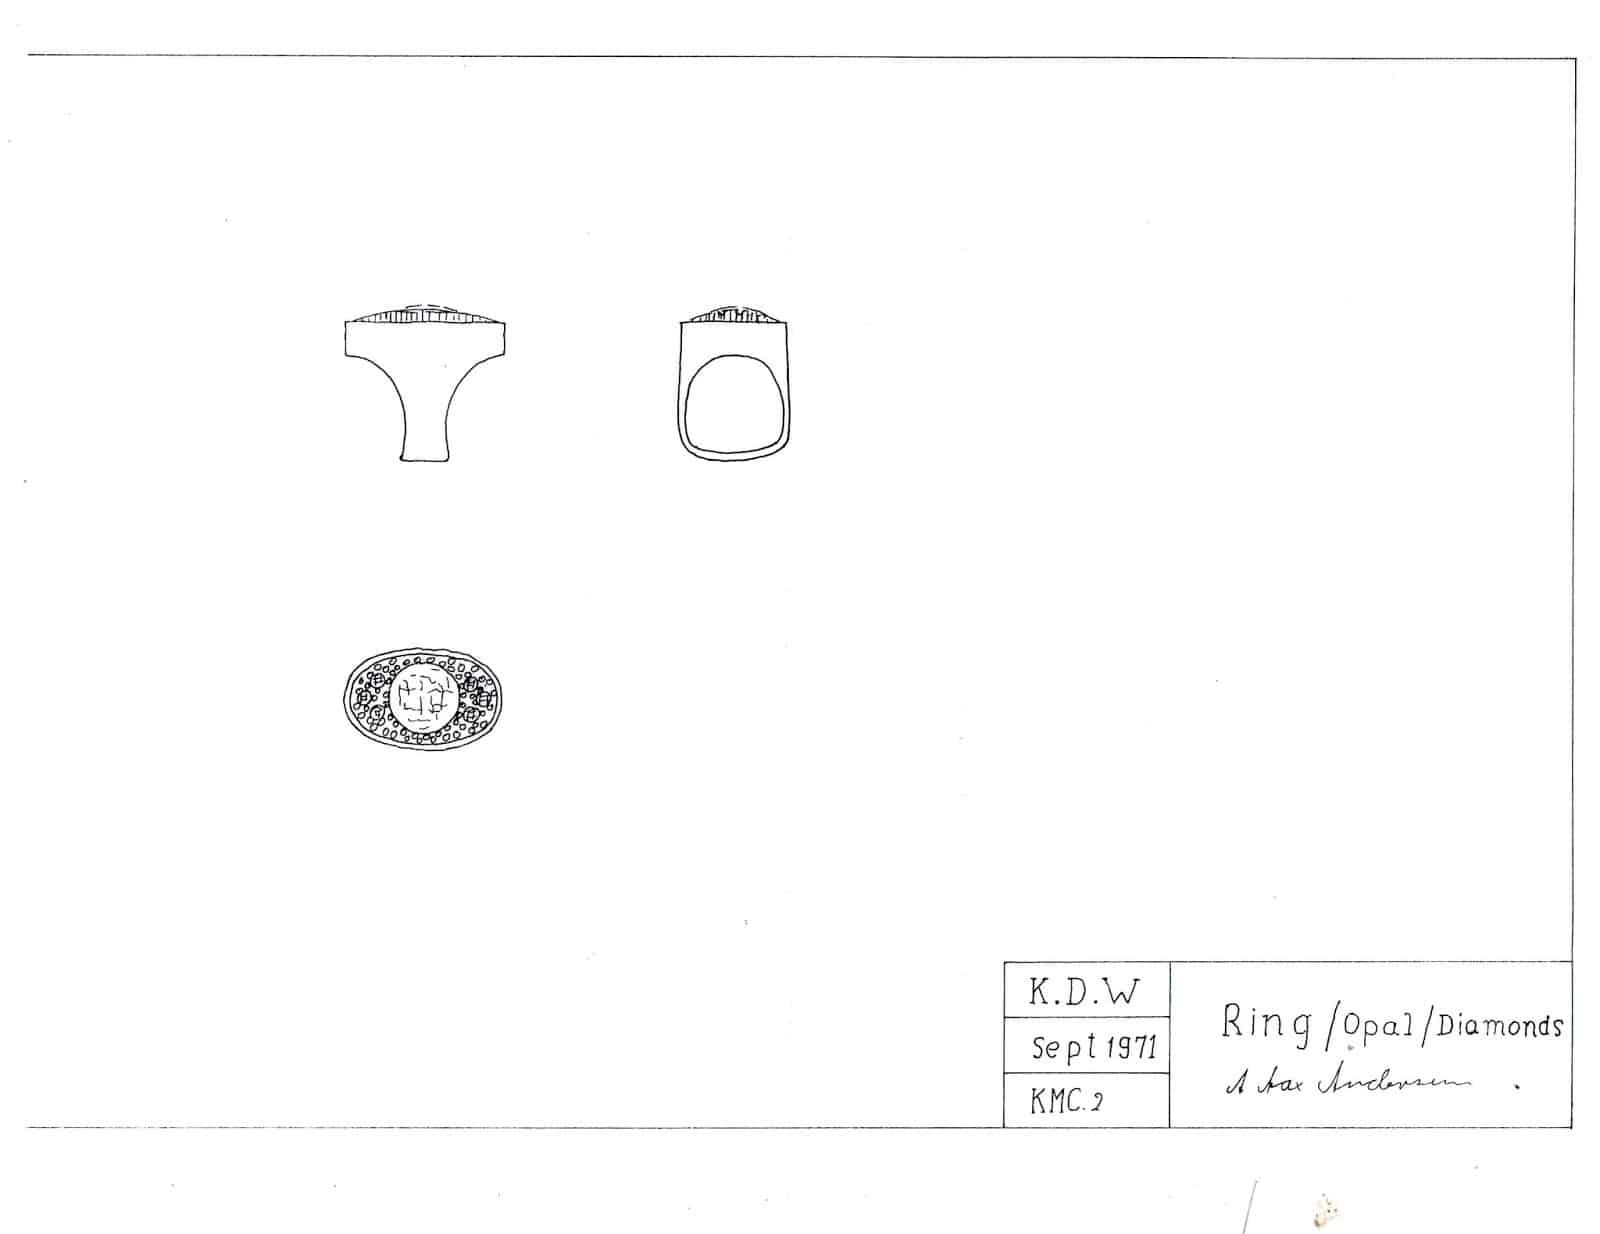 Technical Drawing Sketch of Cluster Ring Jewellery Blog